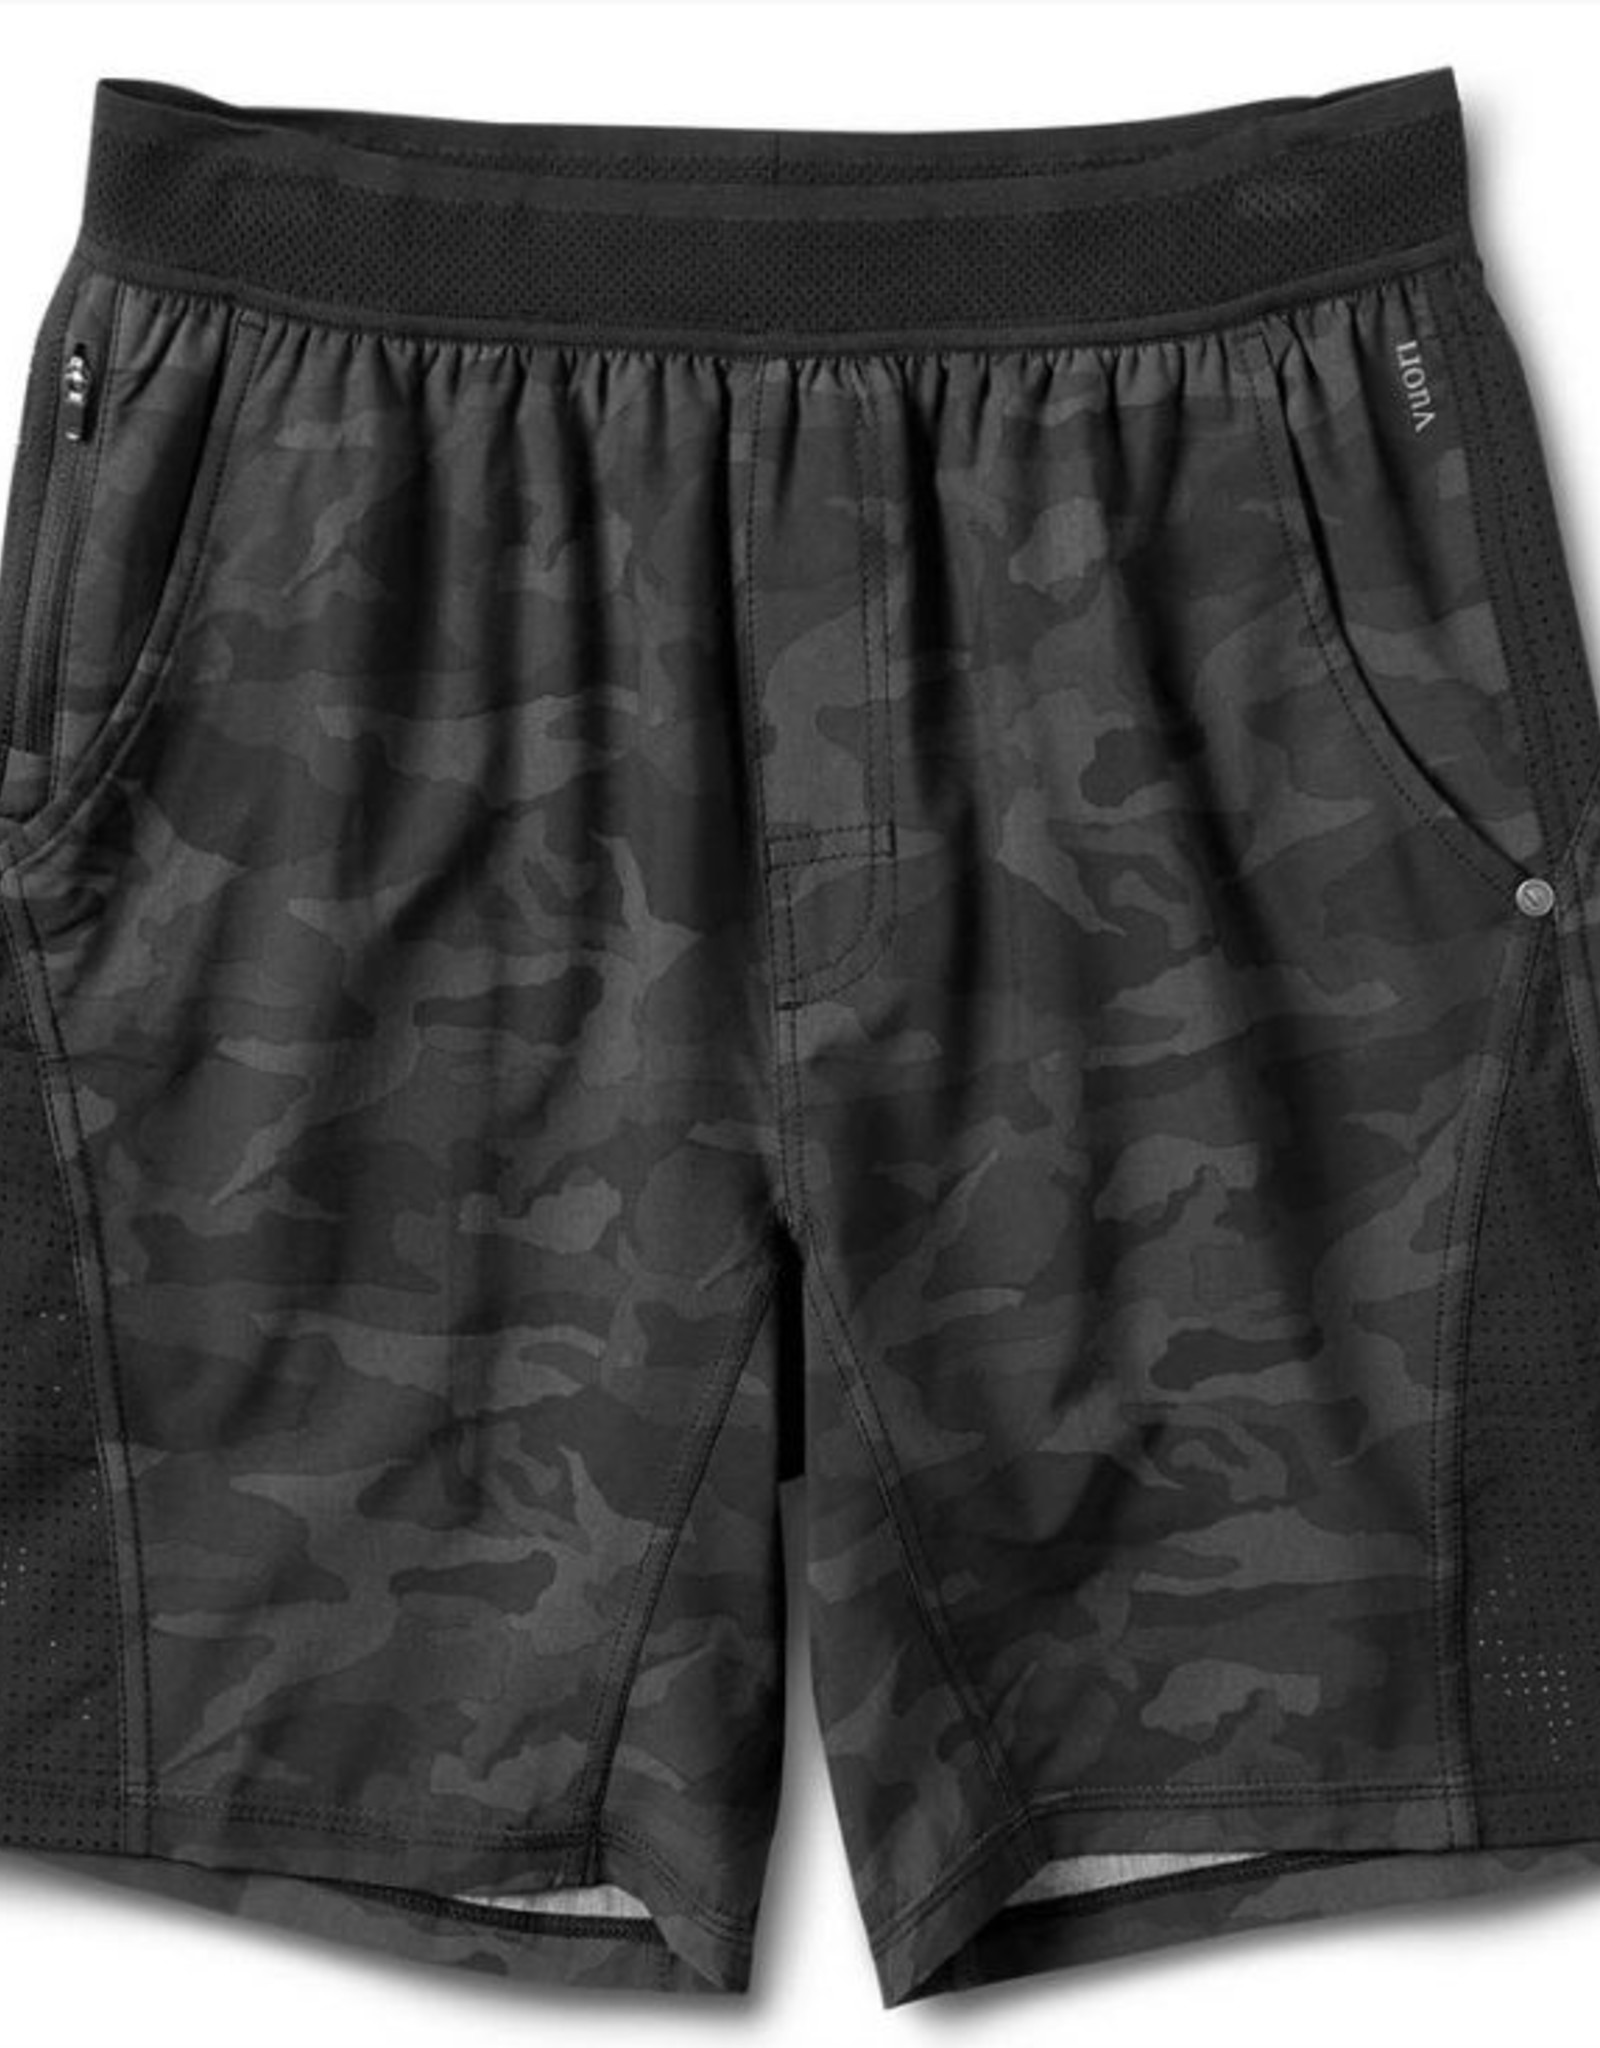 Vuori Vuori Men's Paxton Short